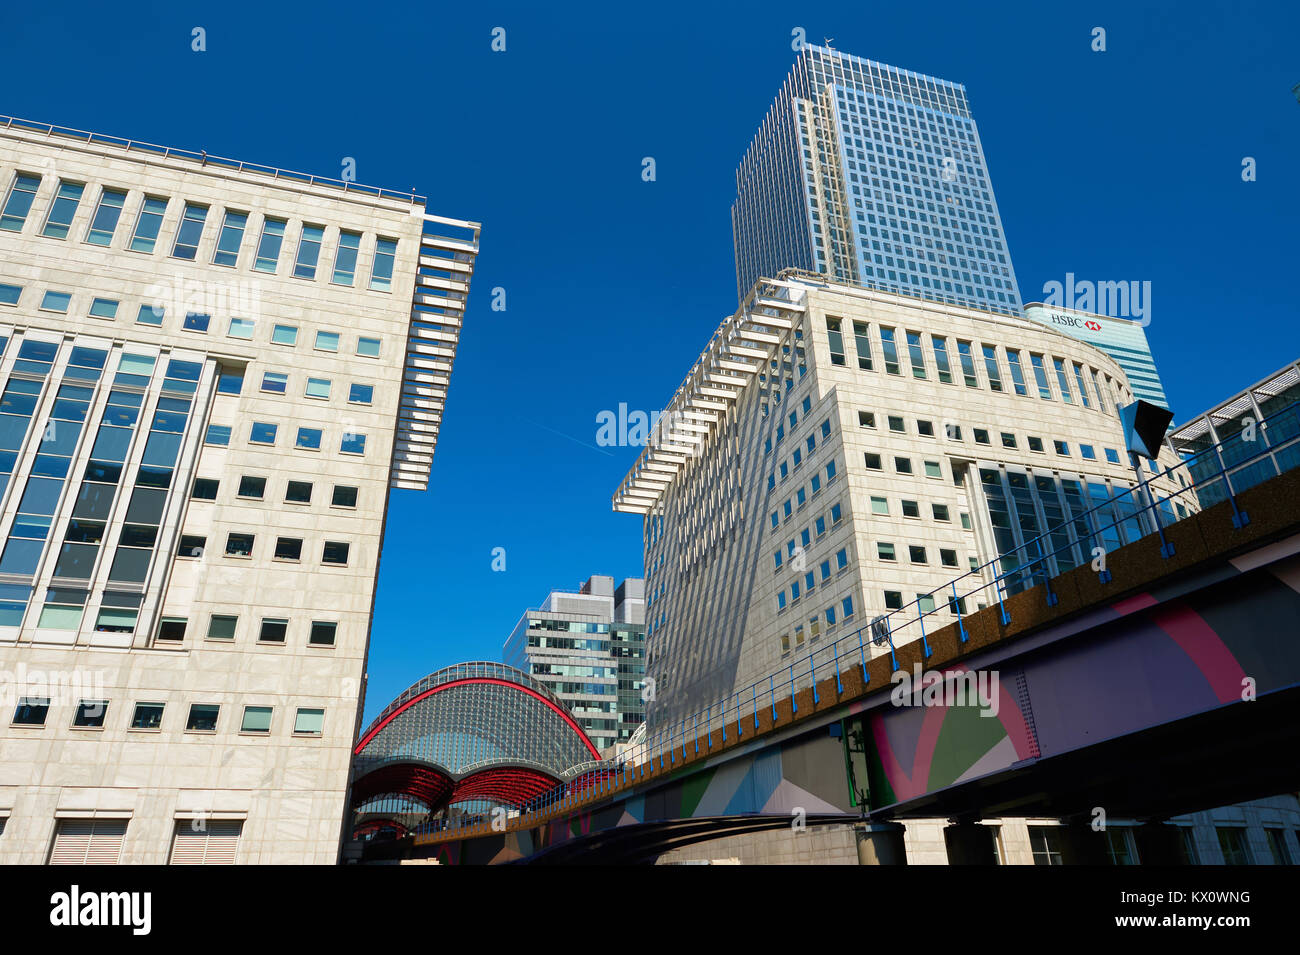 LONDON, ENGLAND - MAY 5, 2013: Canary Wharf, DLR station with several bank buildings as a backdrop. - Stock Image